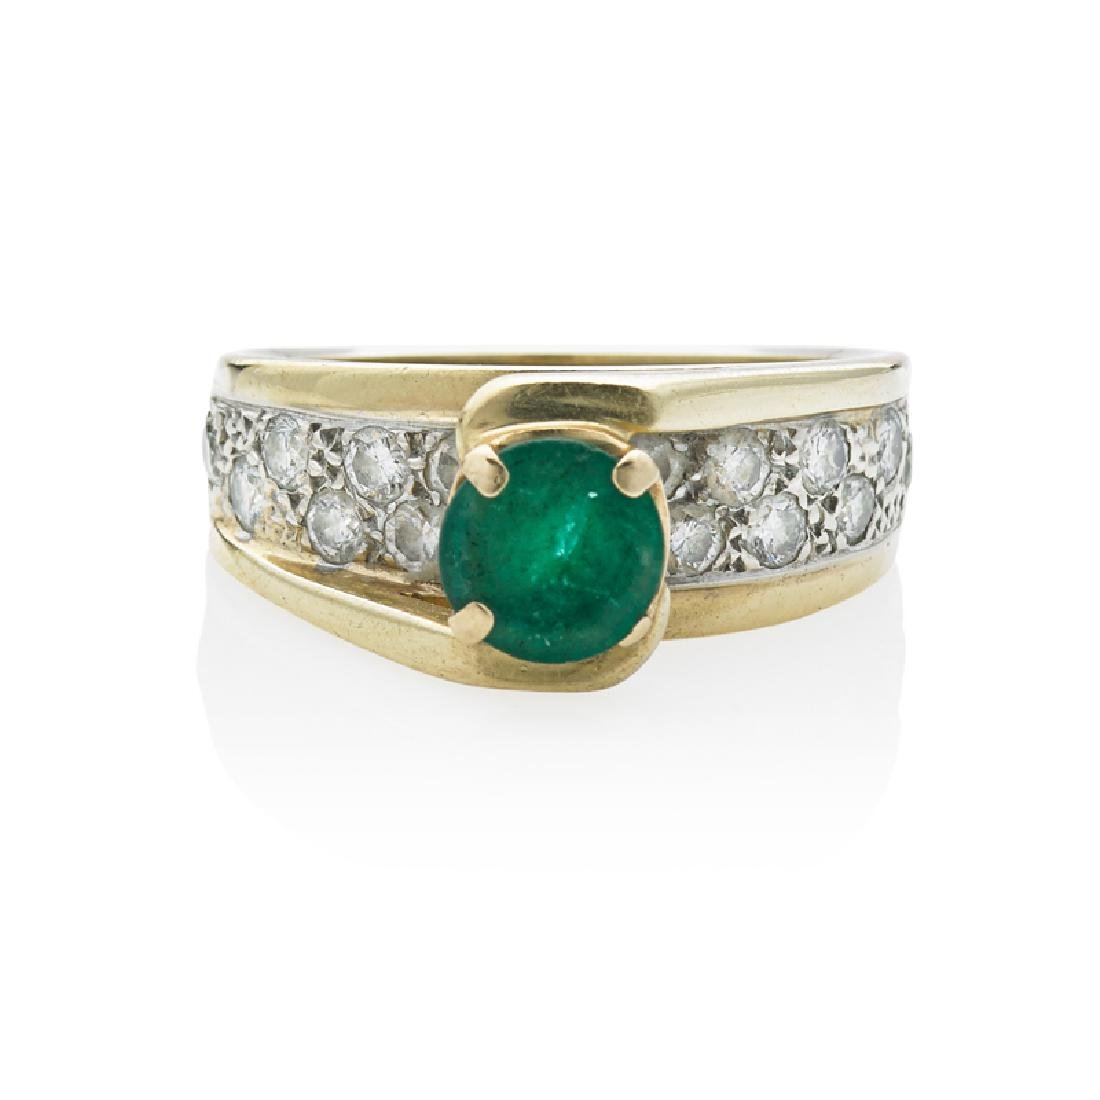 EMERALD, DIAMOND & YELLOW GOLD RING